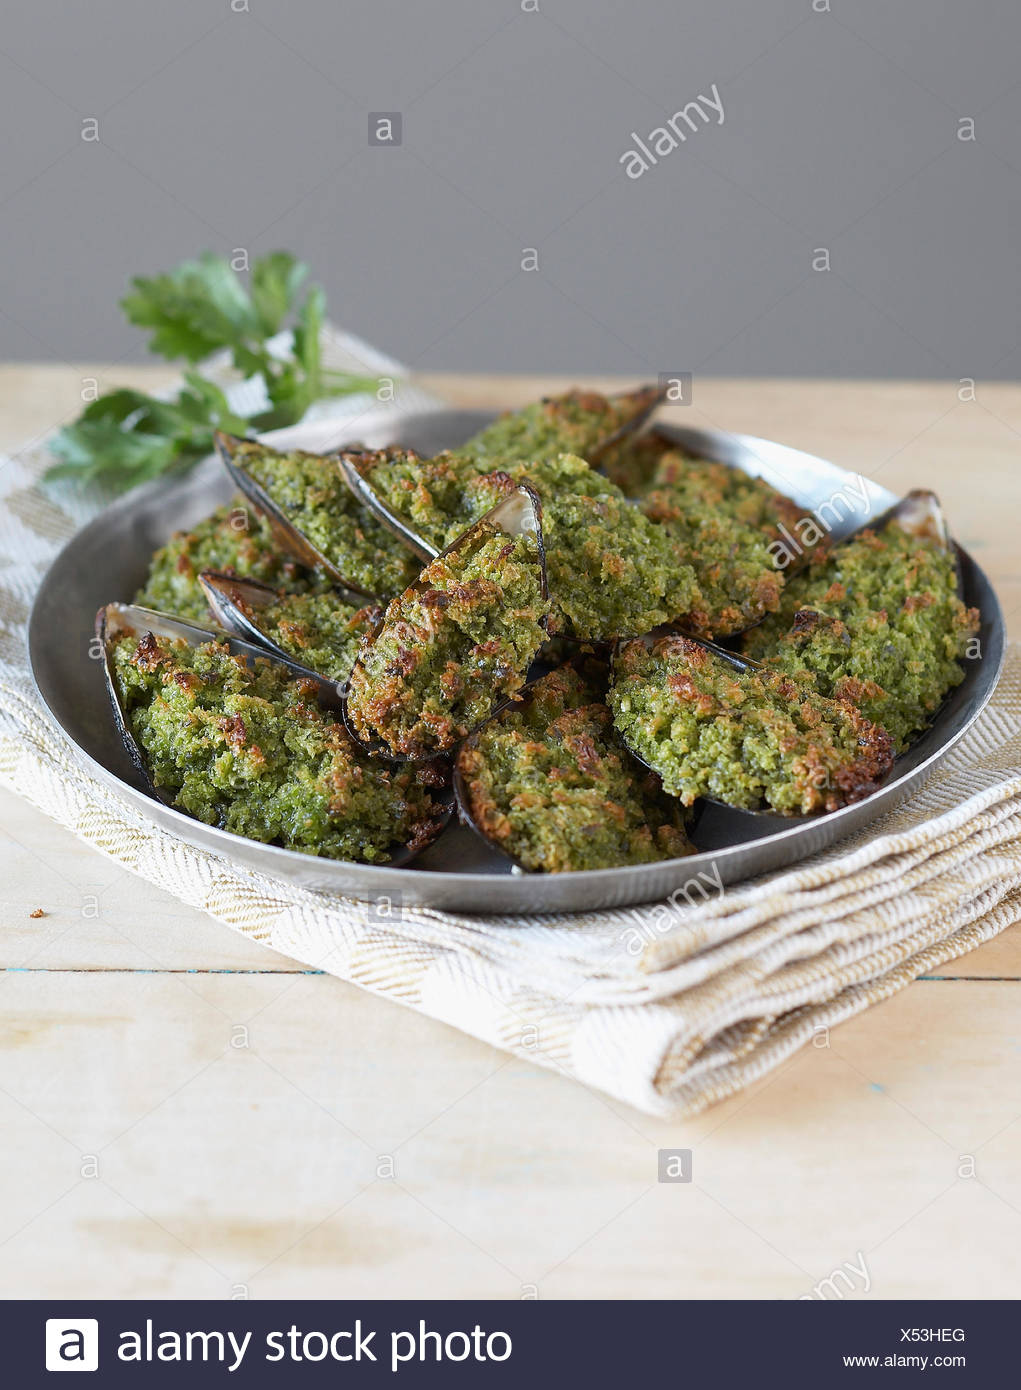 Grilled mussels with herbs - Stock Image